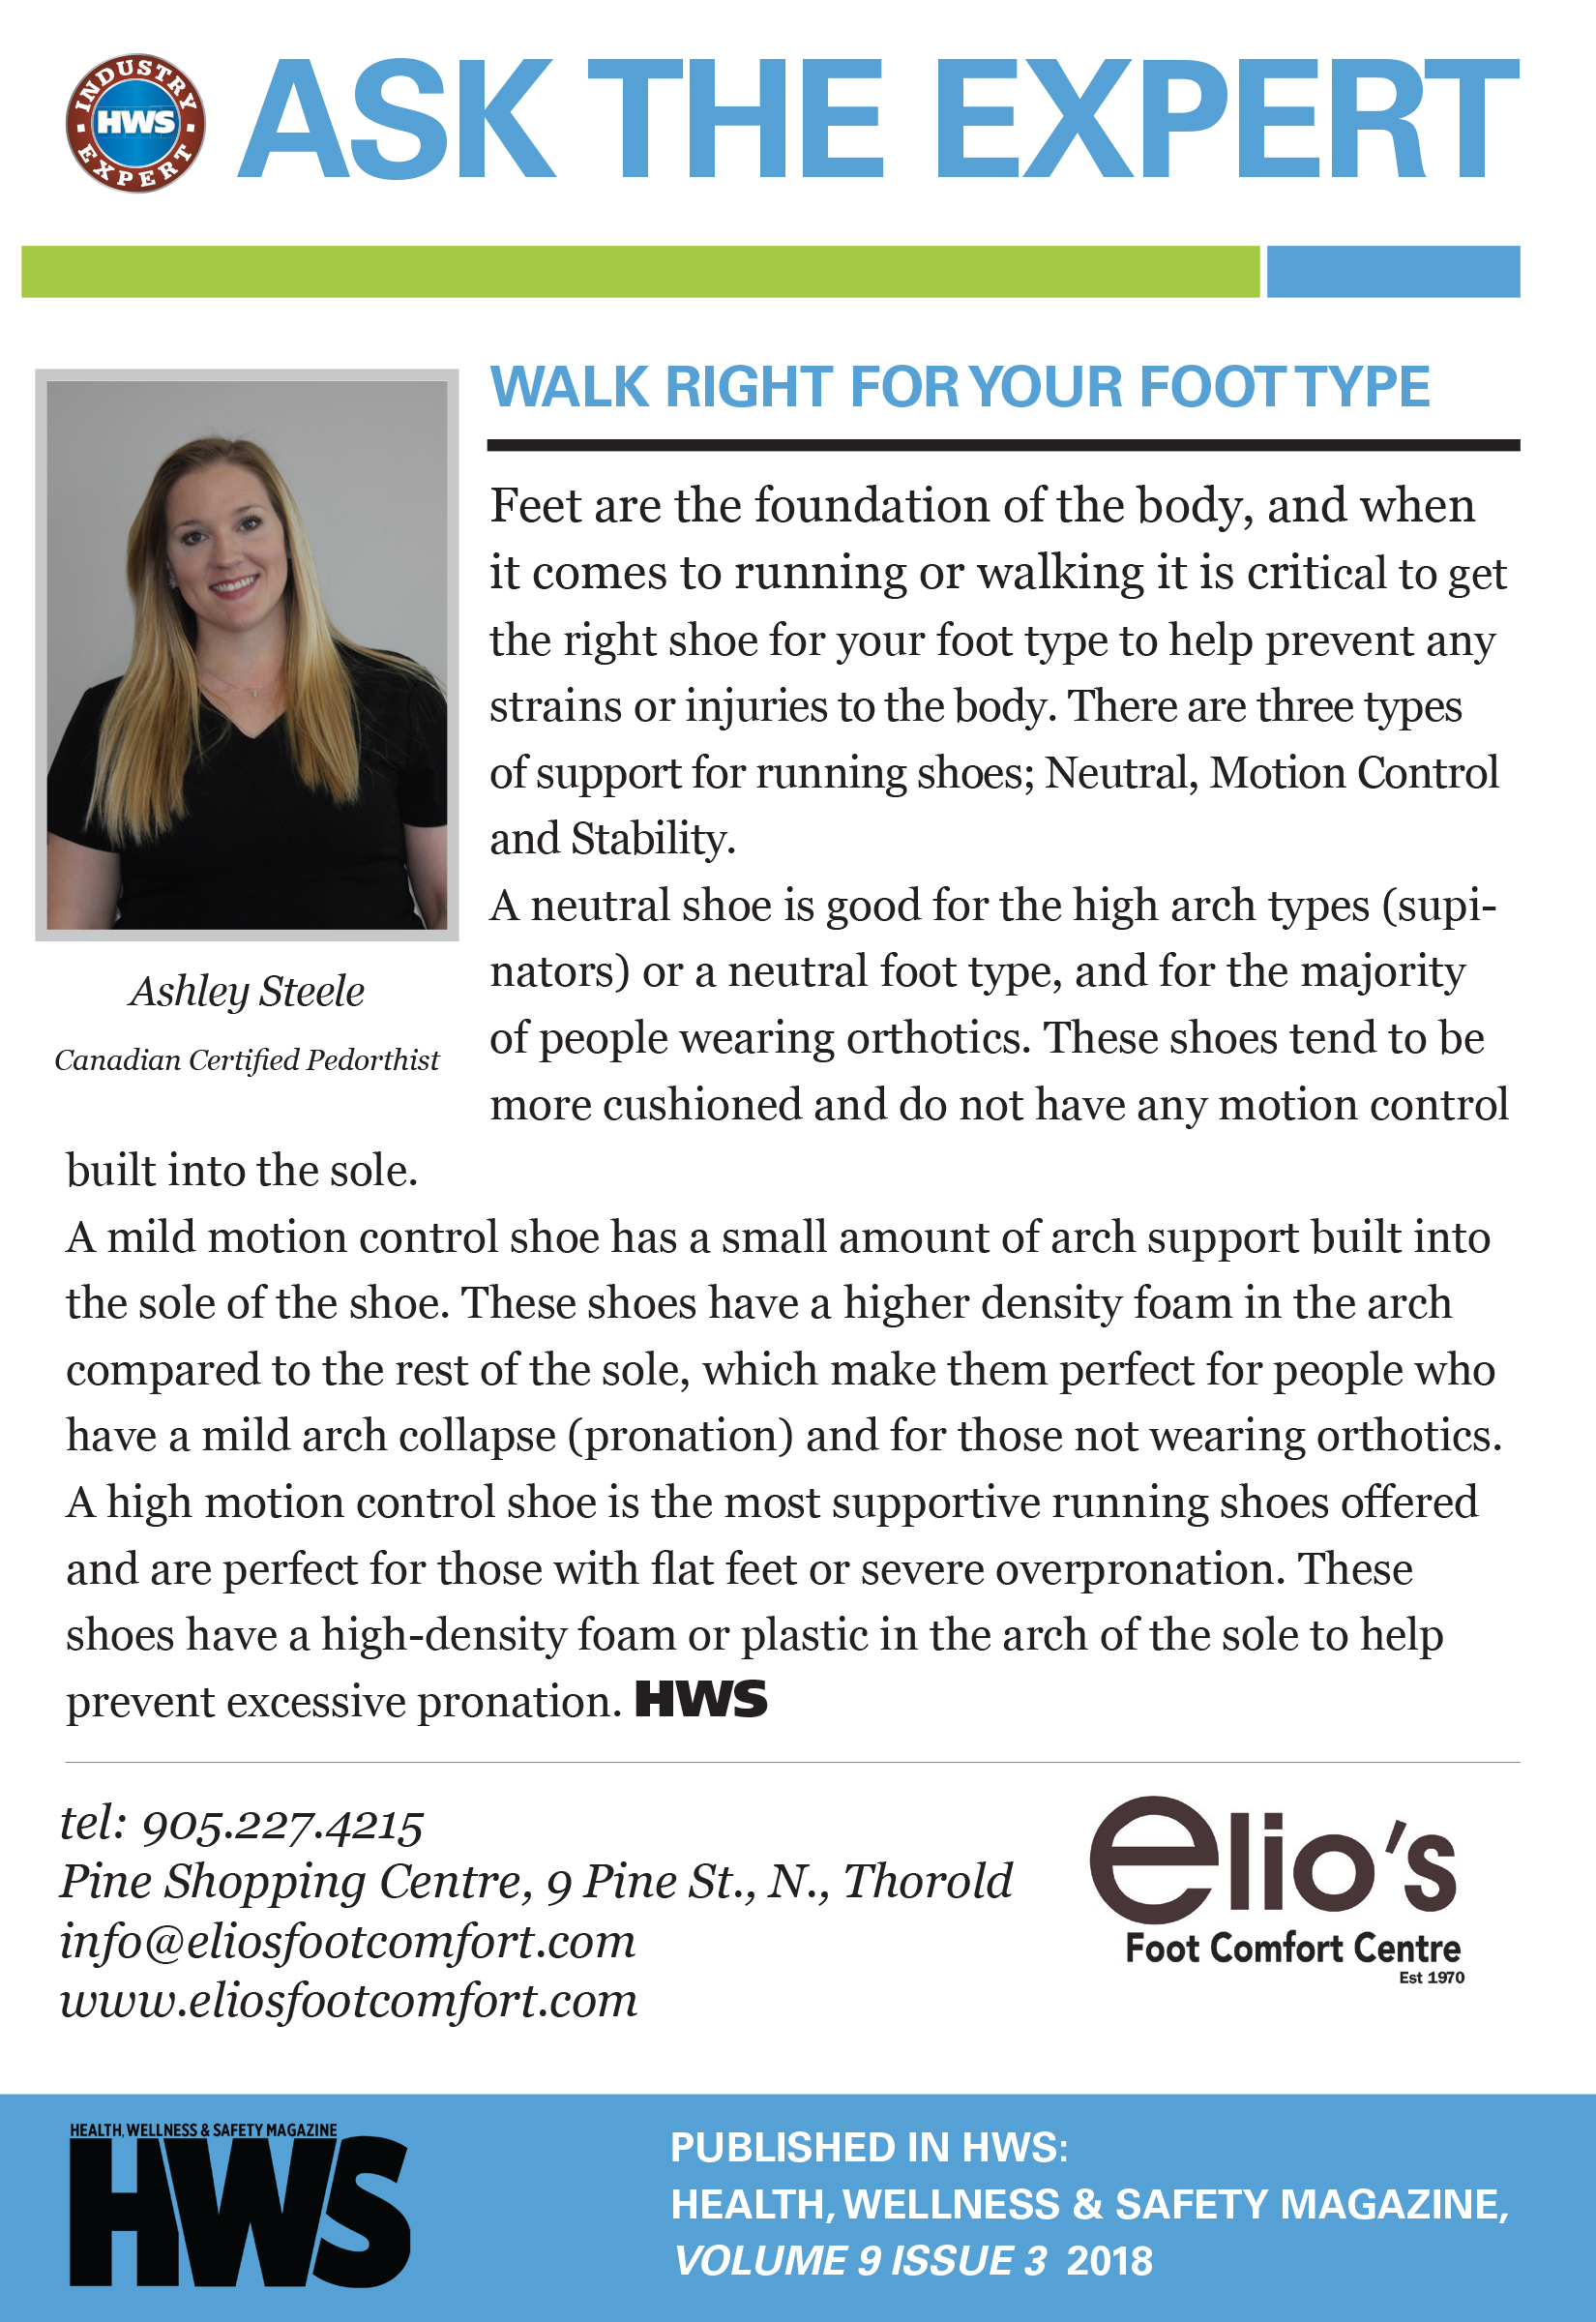 Walk Right Foot Type, Elio's Expert, Ashley